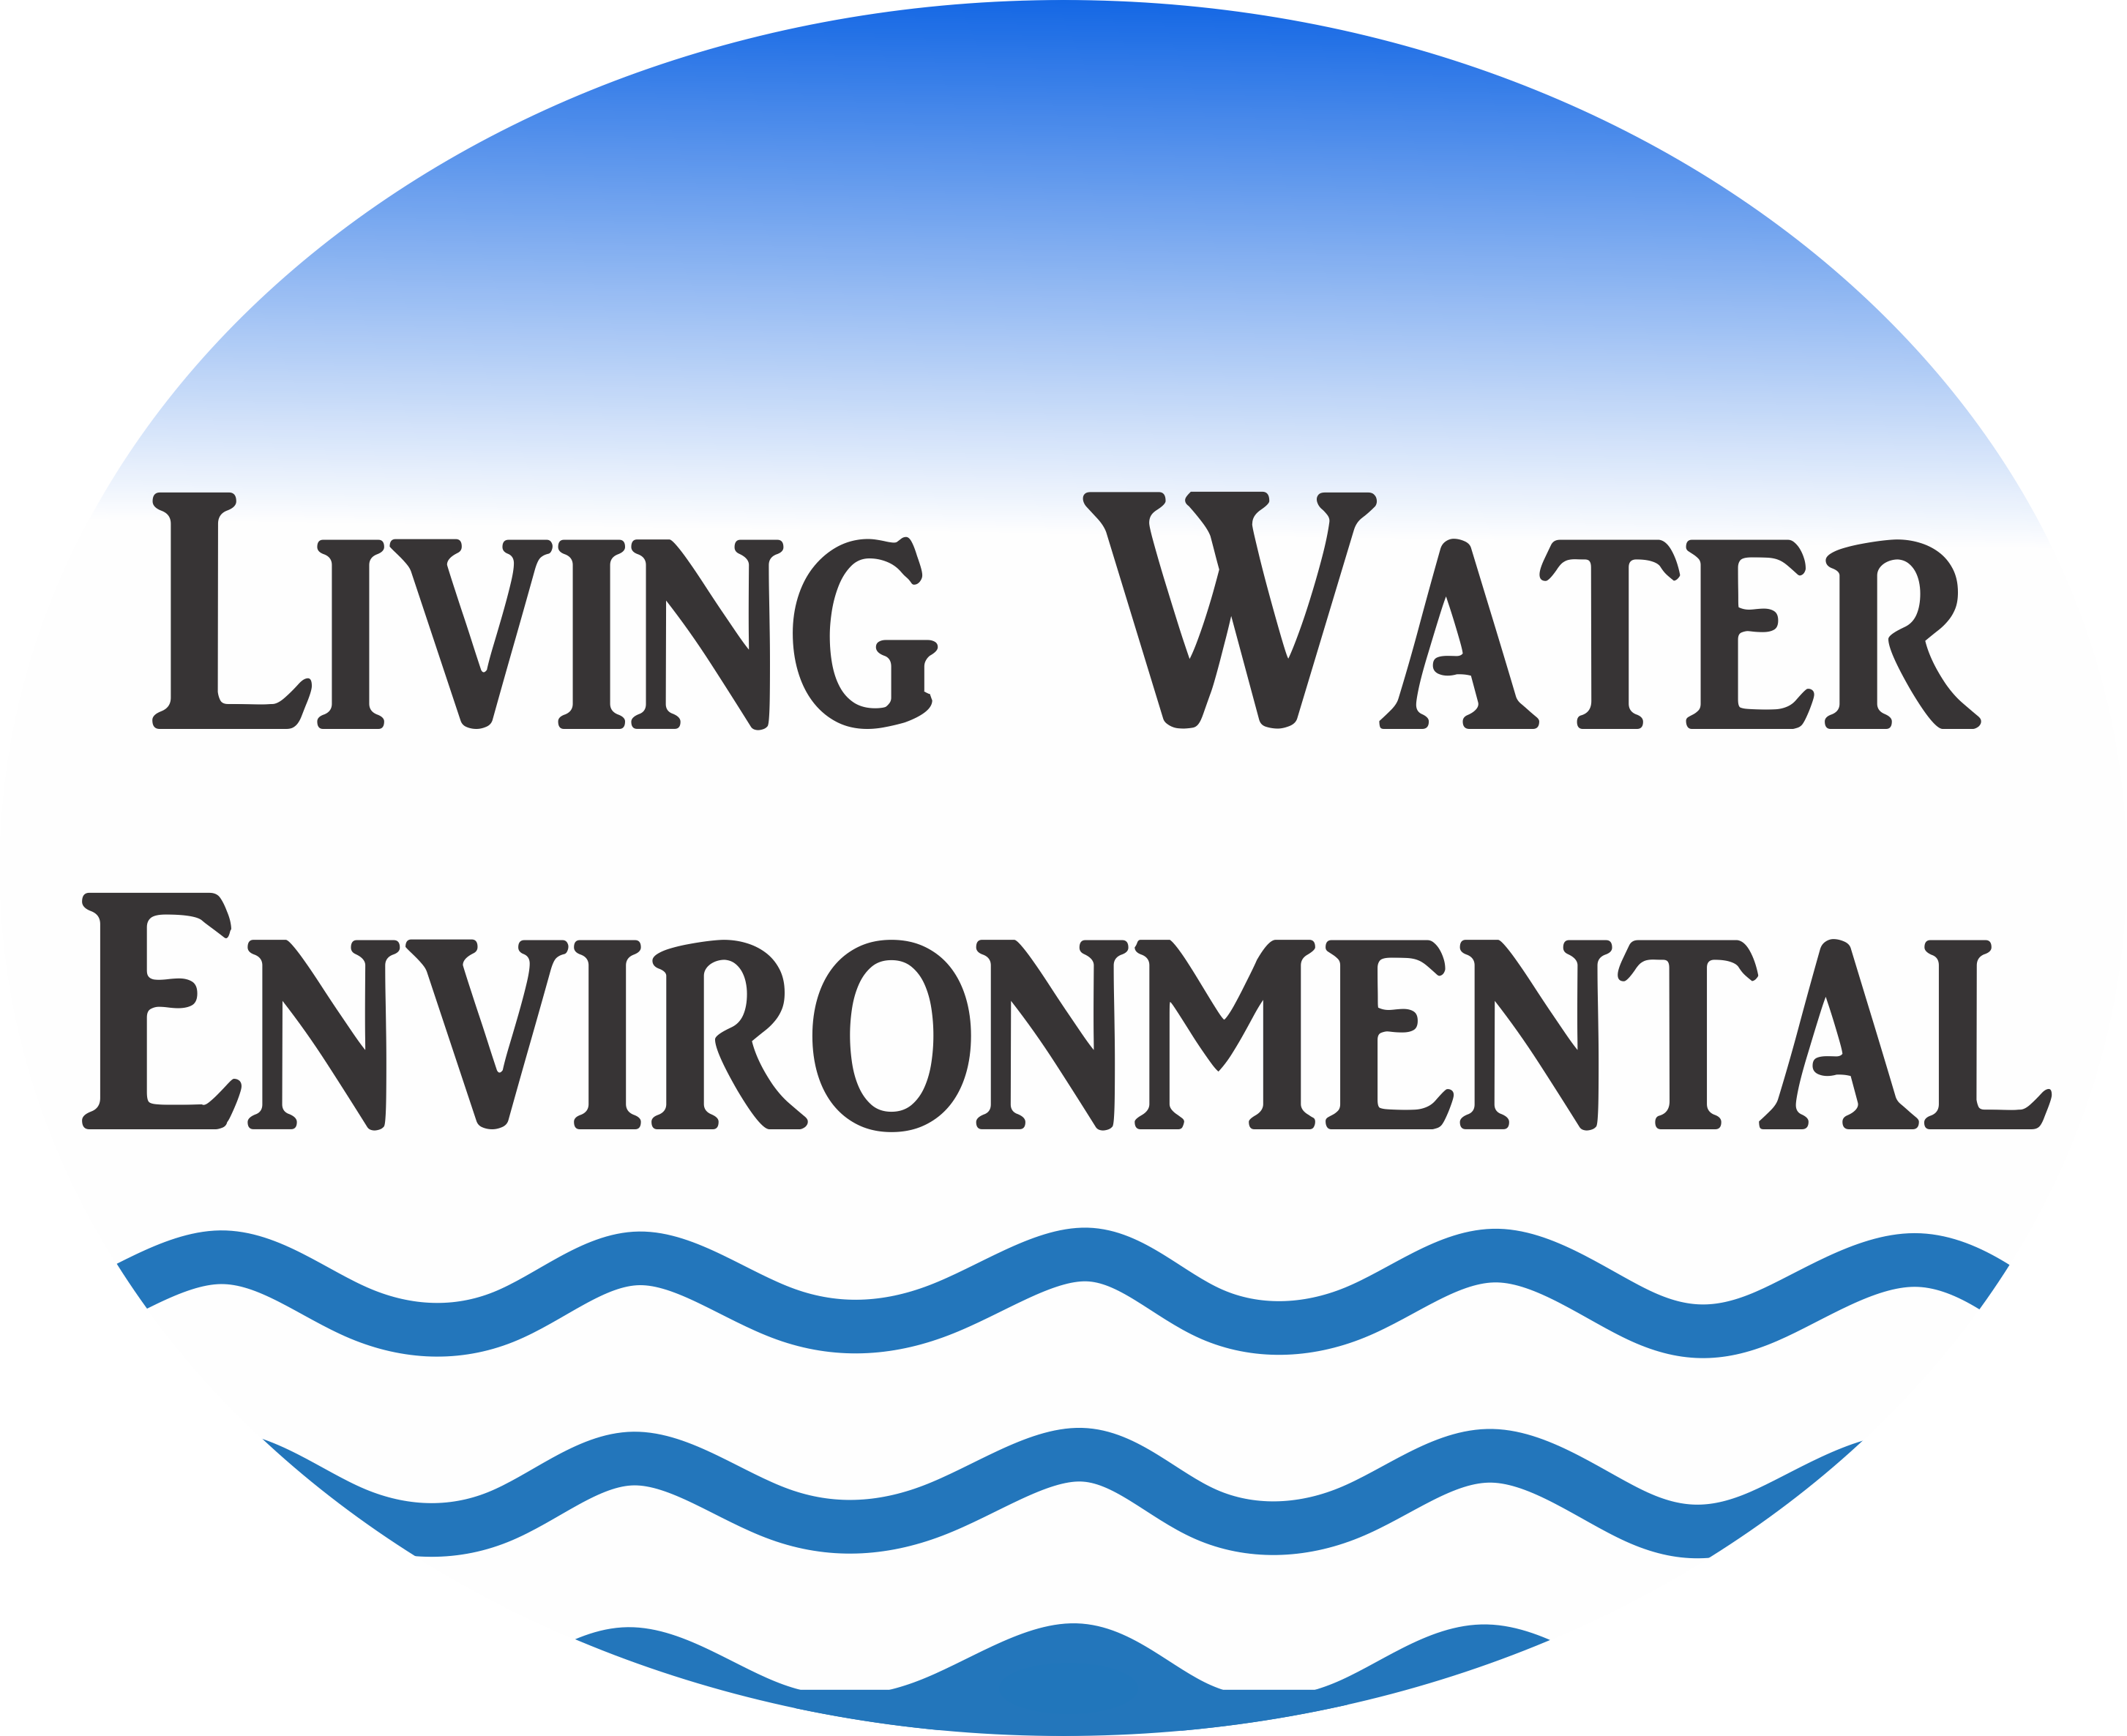 Living Water Environmental